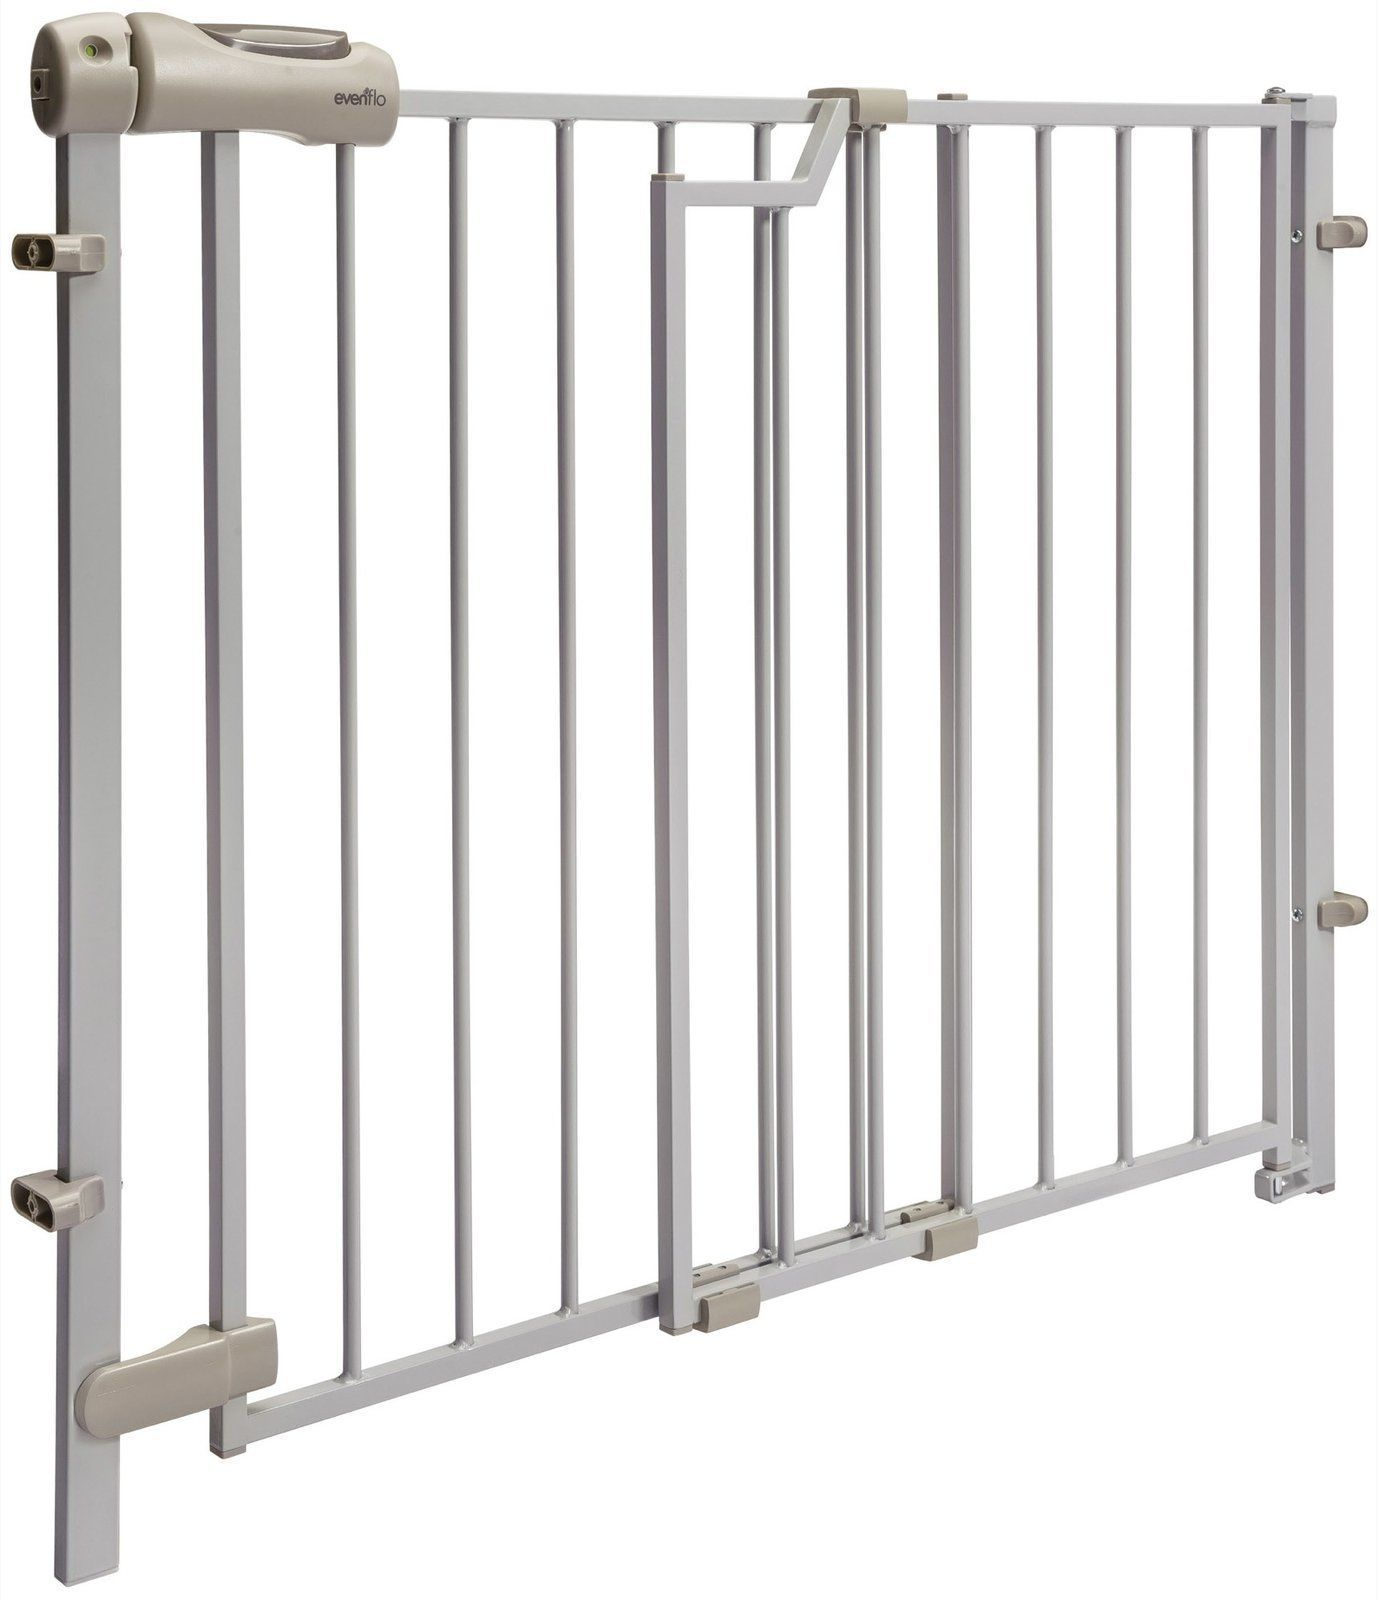 Evenflo Secure Step Top of Stairs Gate, Taupe - 4233052